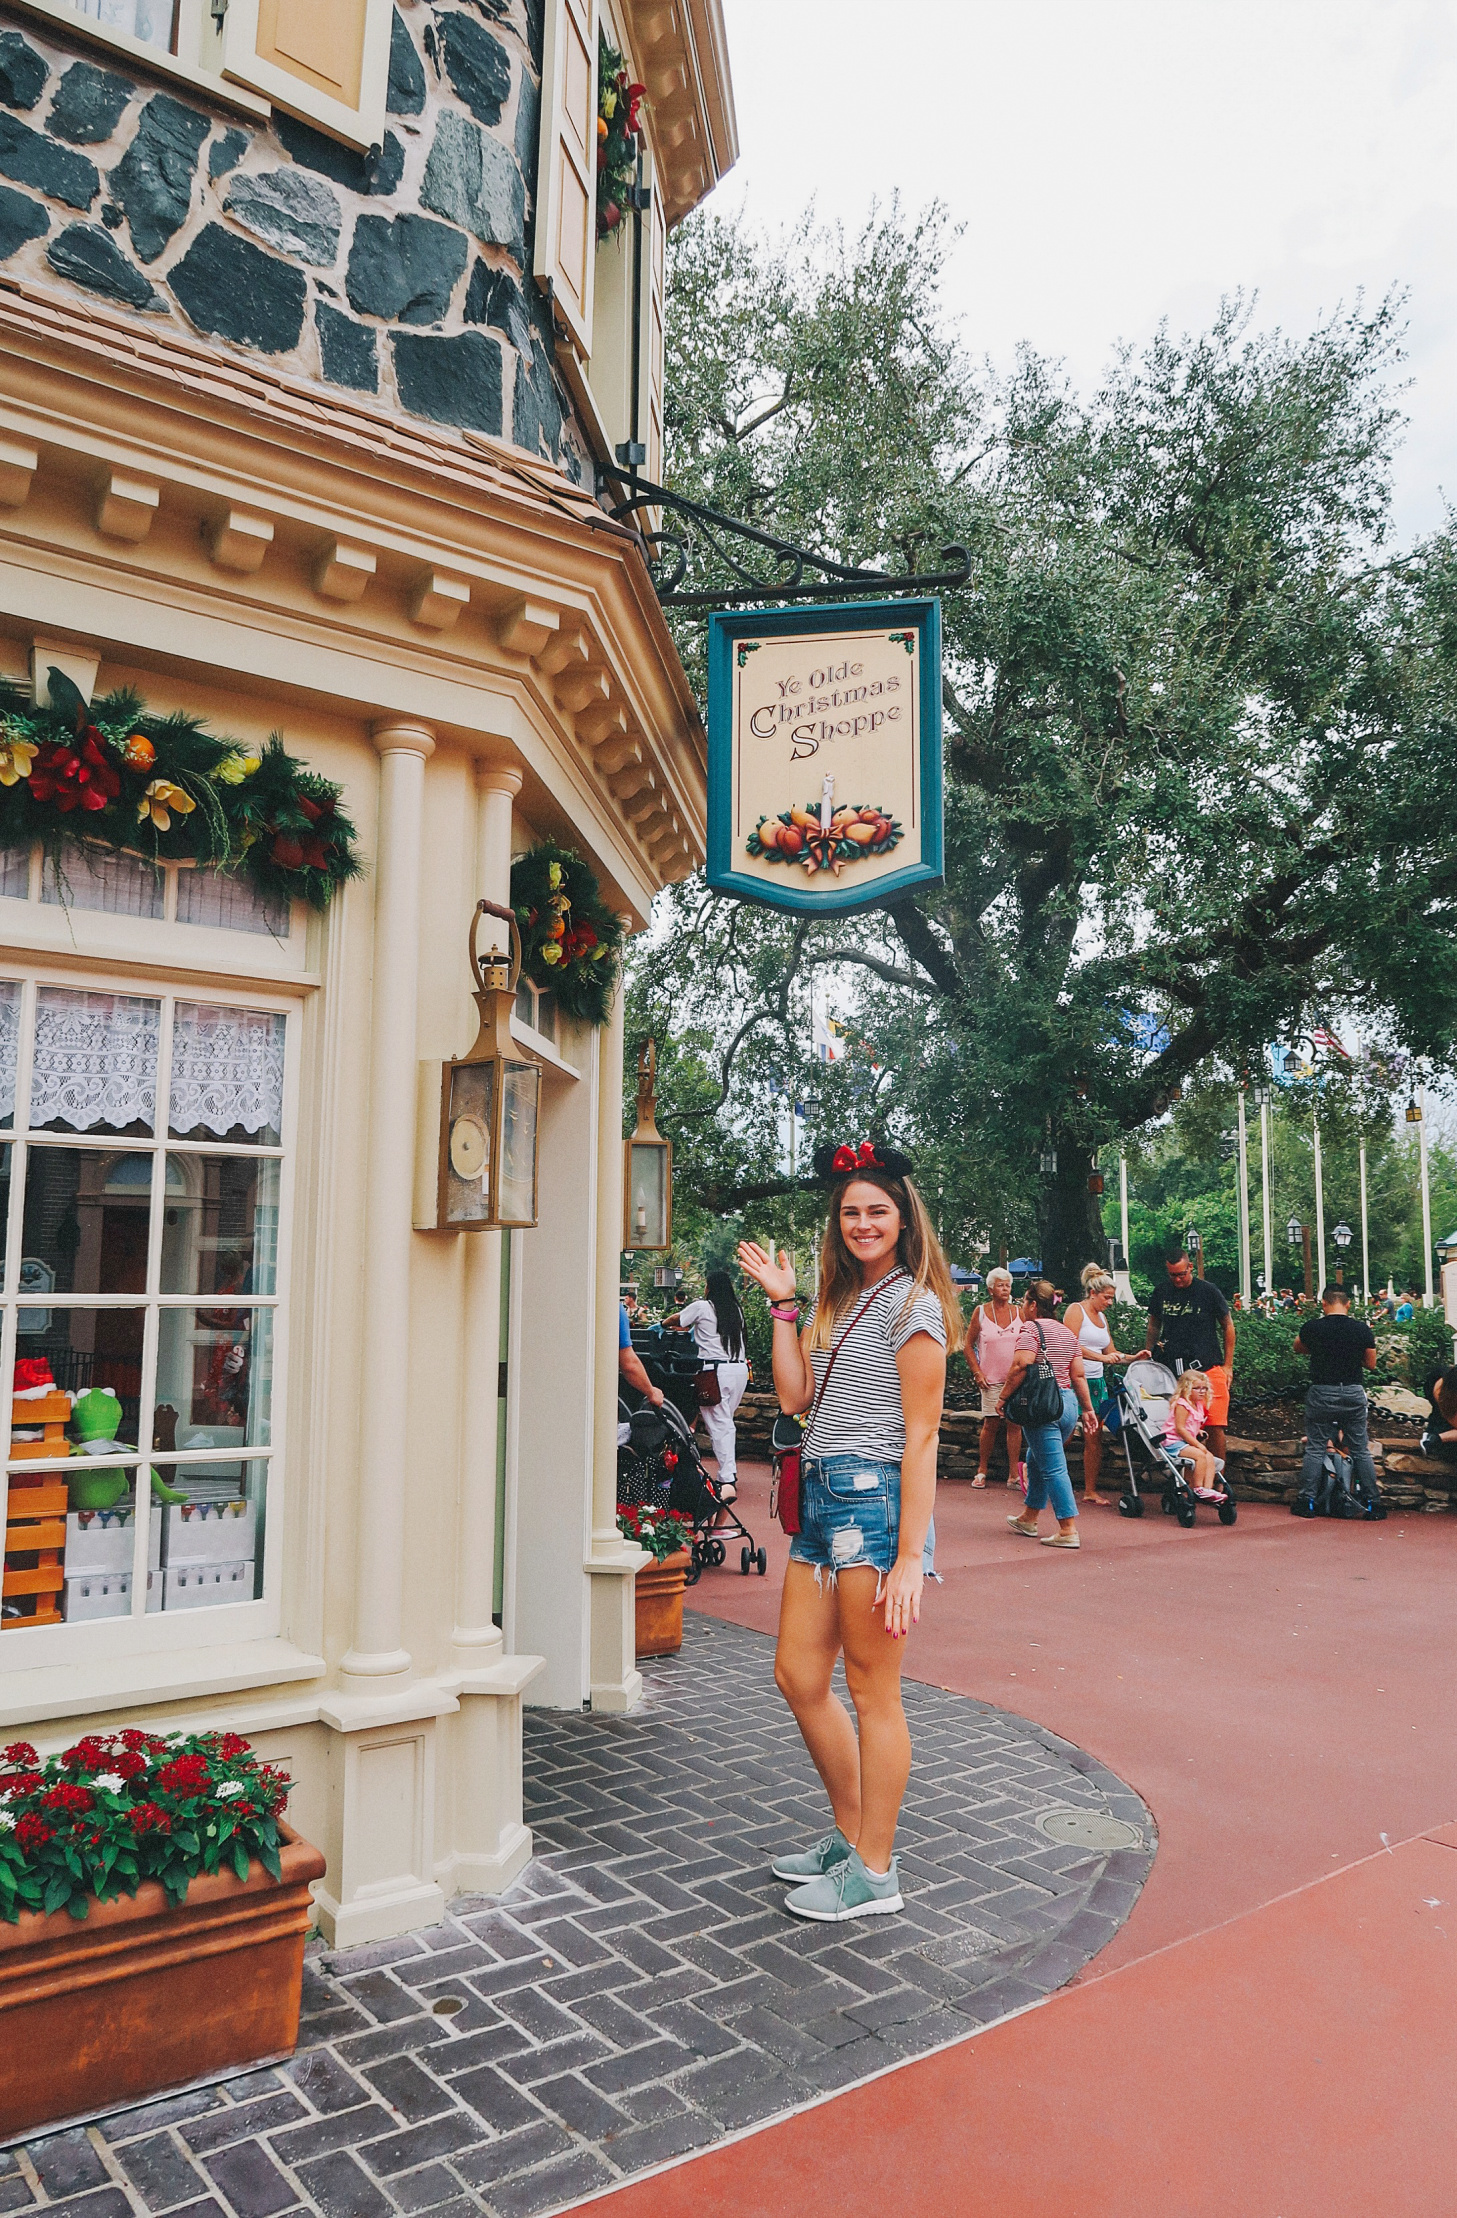 Our Day at Disney World's Magic Kingdom Christmas Store